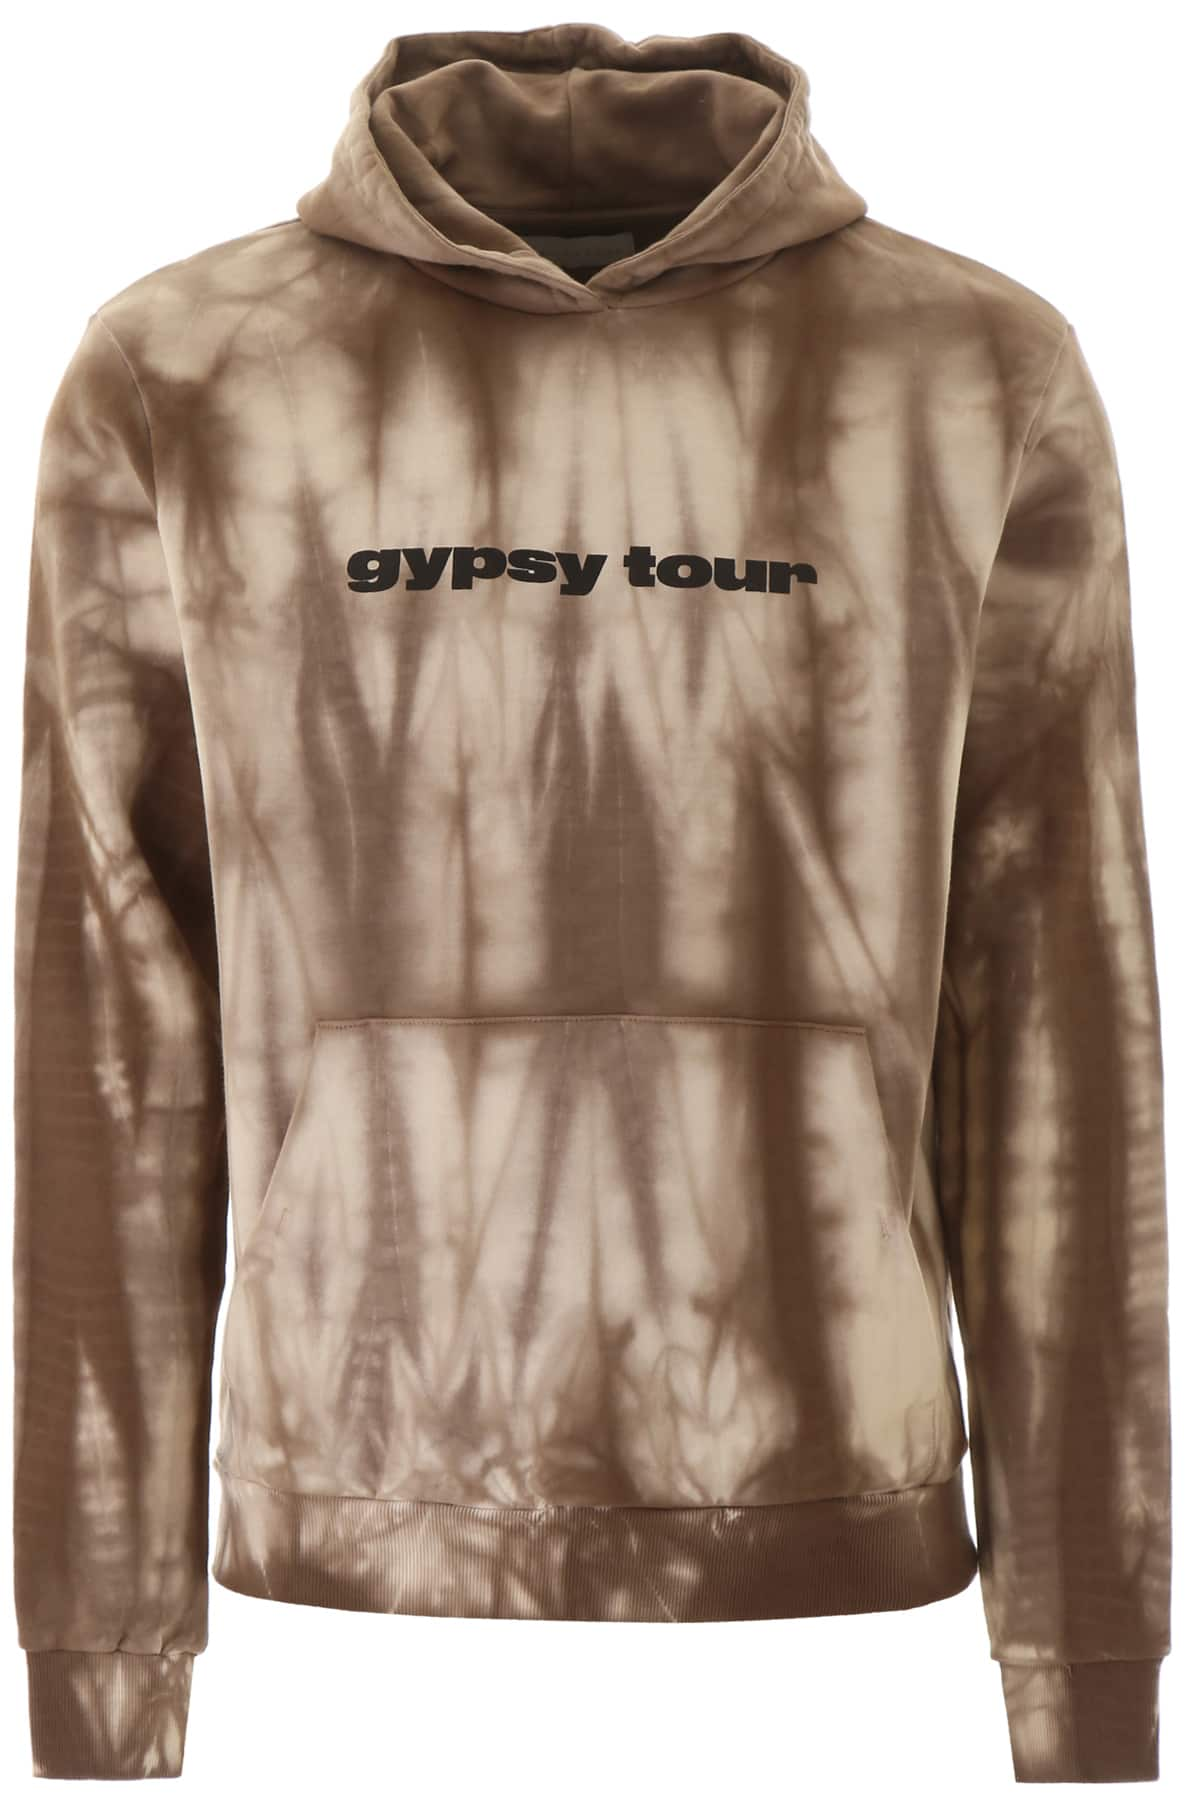 PAURA TIE-DYE HOODIE L Brown, Beige Cotton